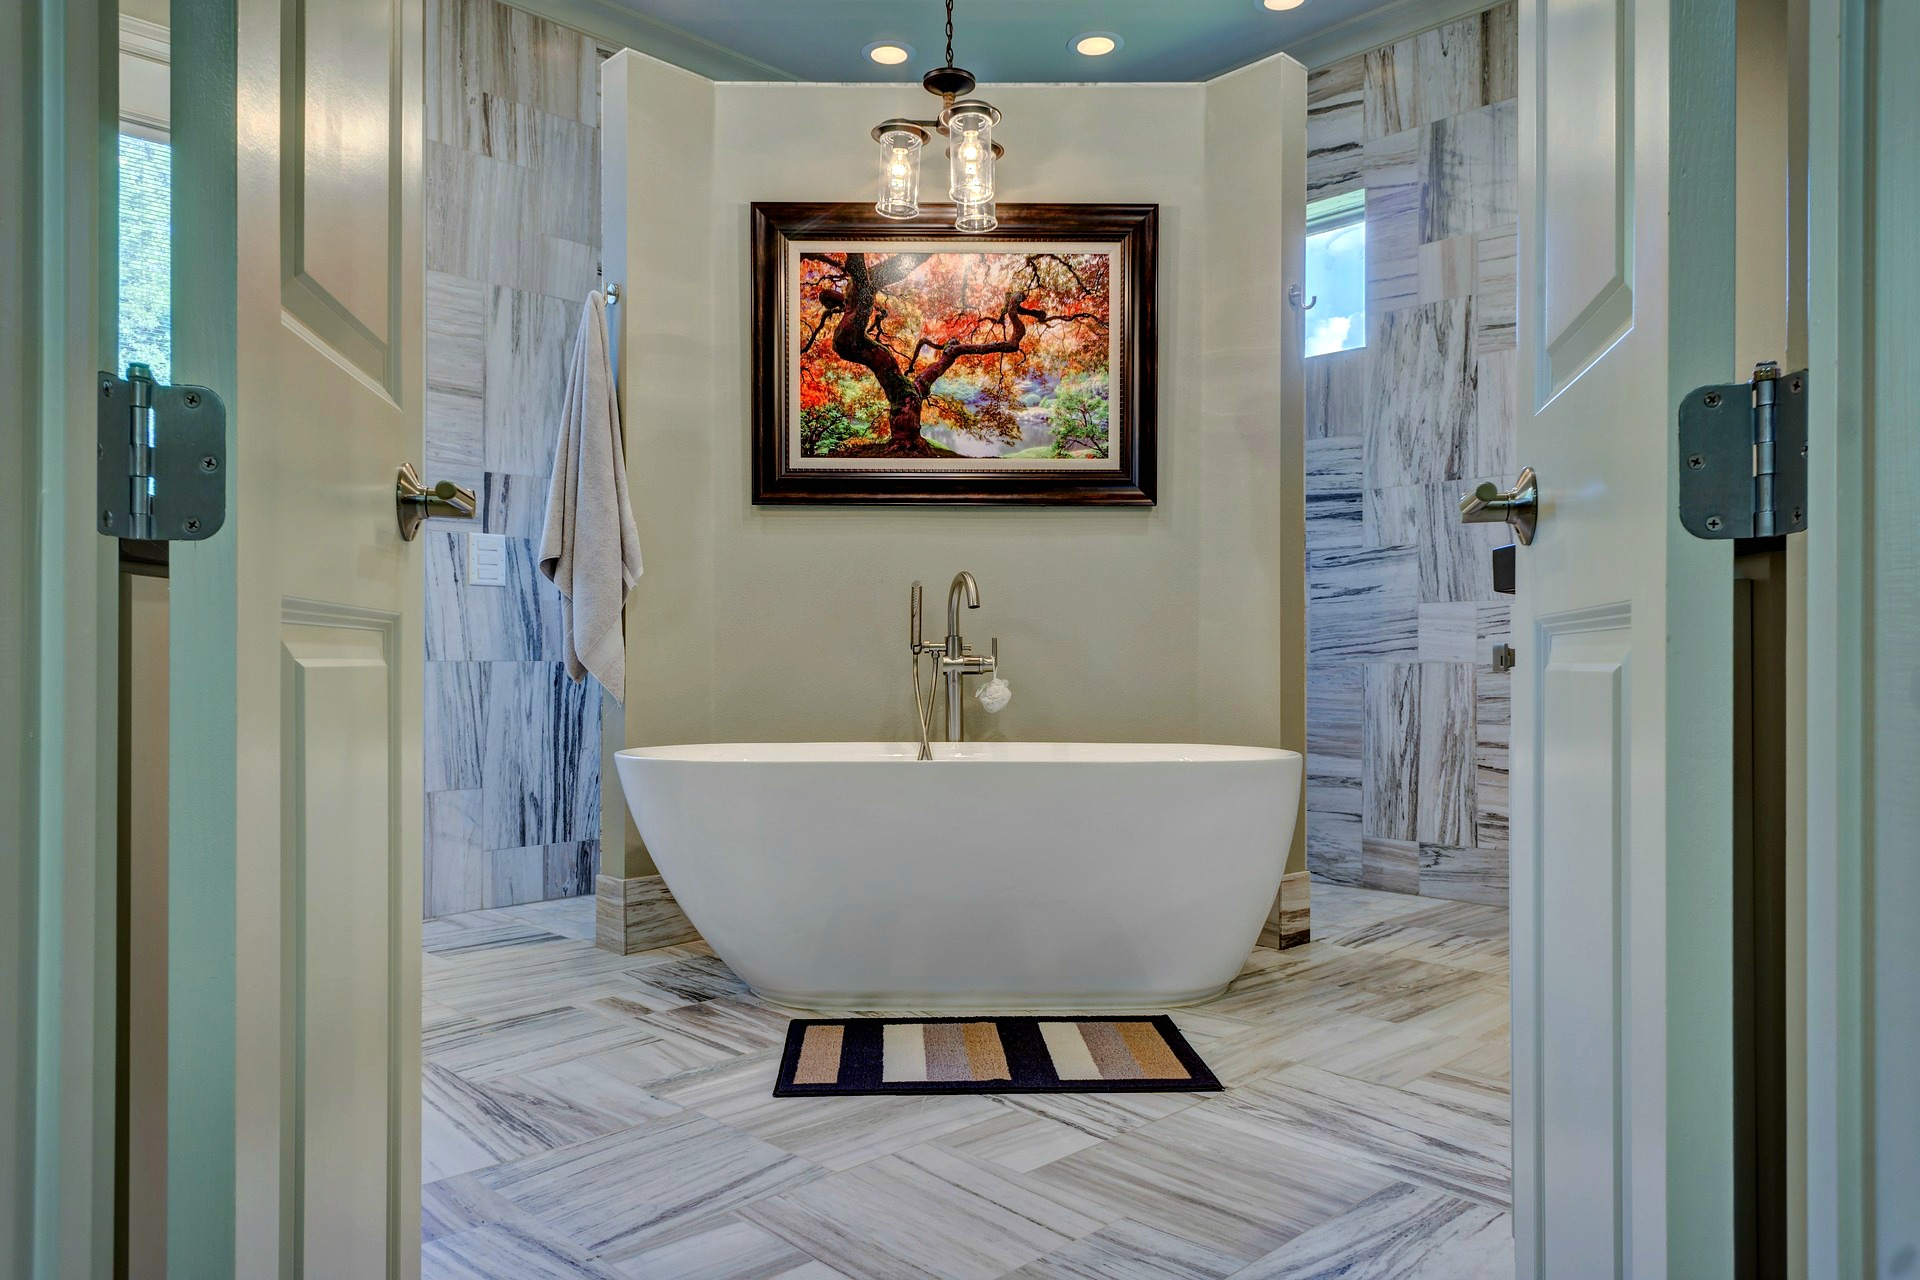 Can You Sell A House Without A Bathtub? Do You Need A ...